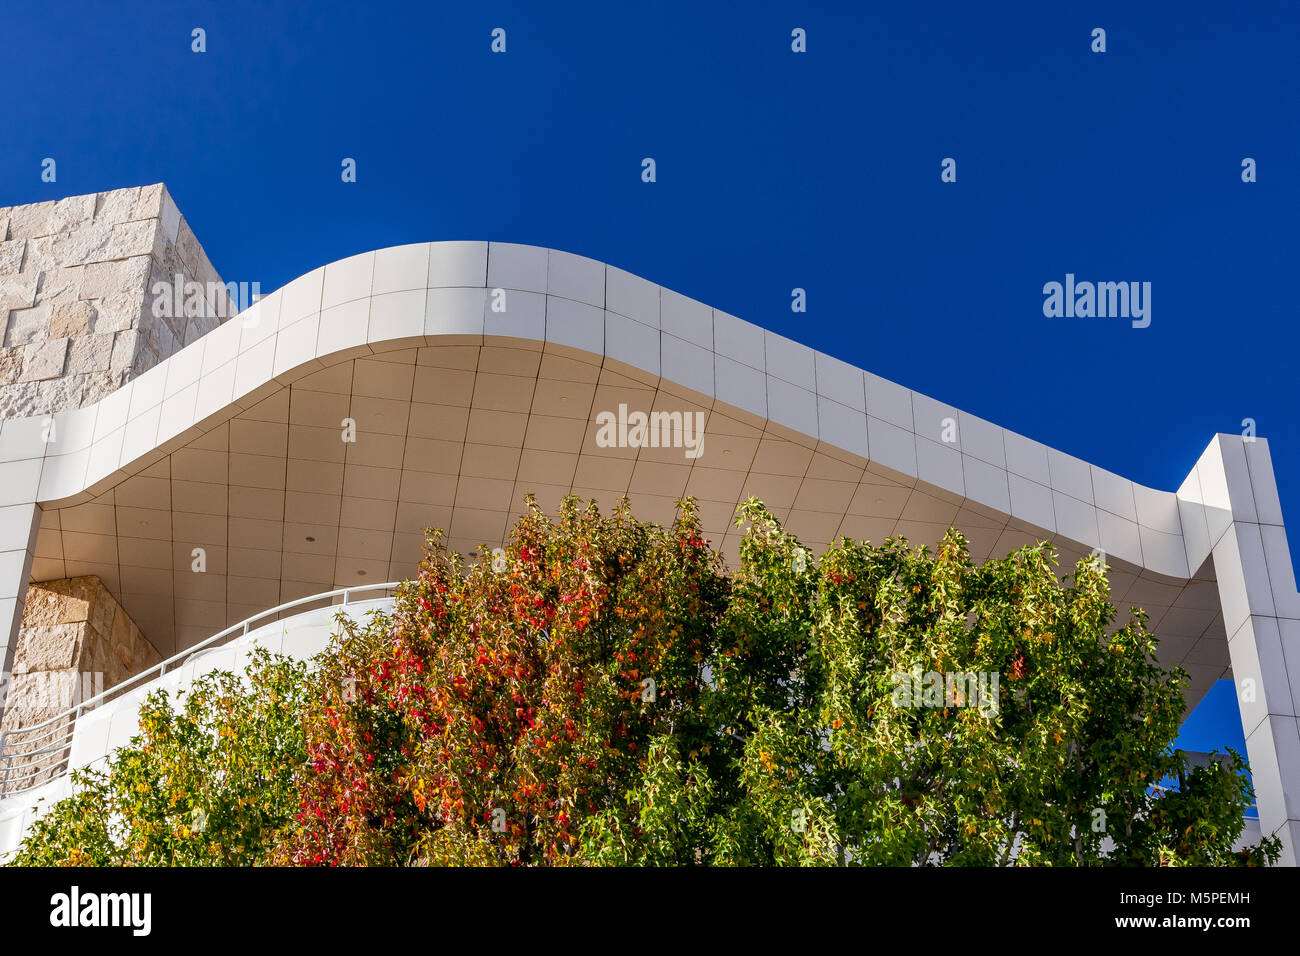 The Getty Center, Museum and Research Center, designed by Richard Meier, Exterior, Brentwood, Los Angeles, California, - Stock Image